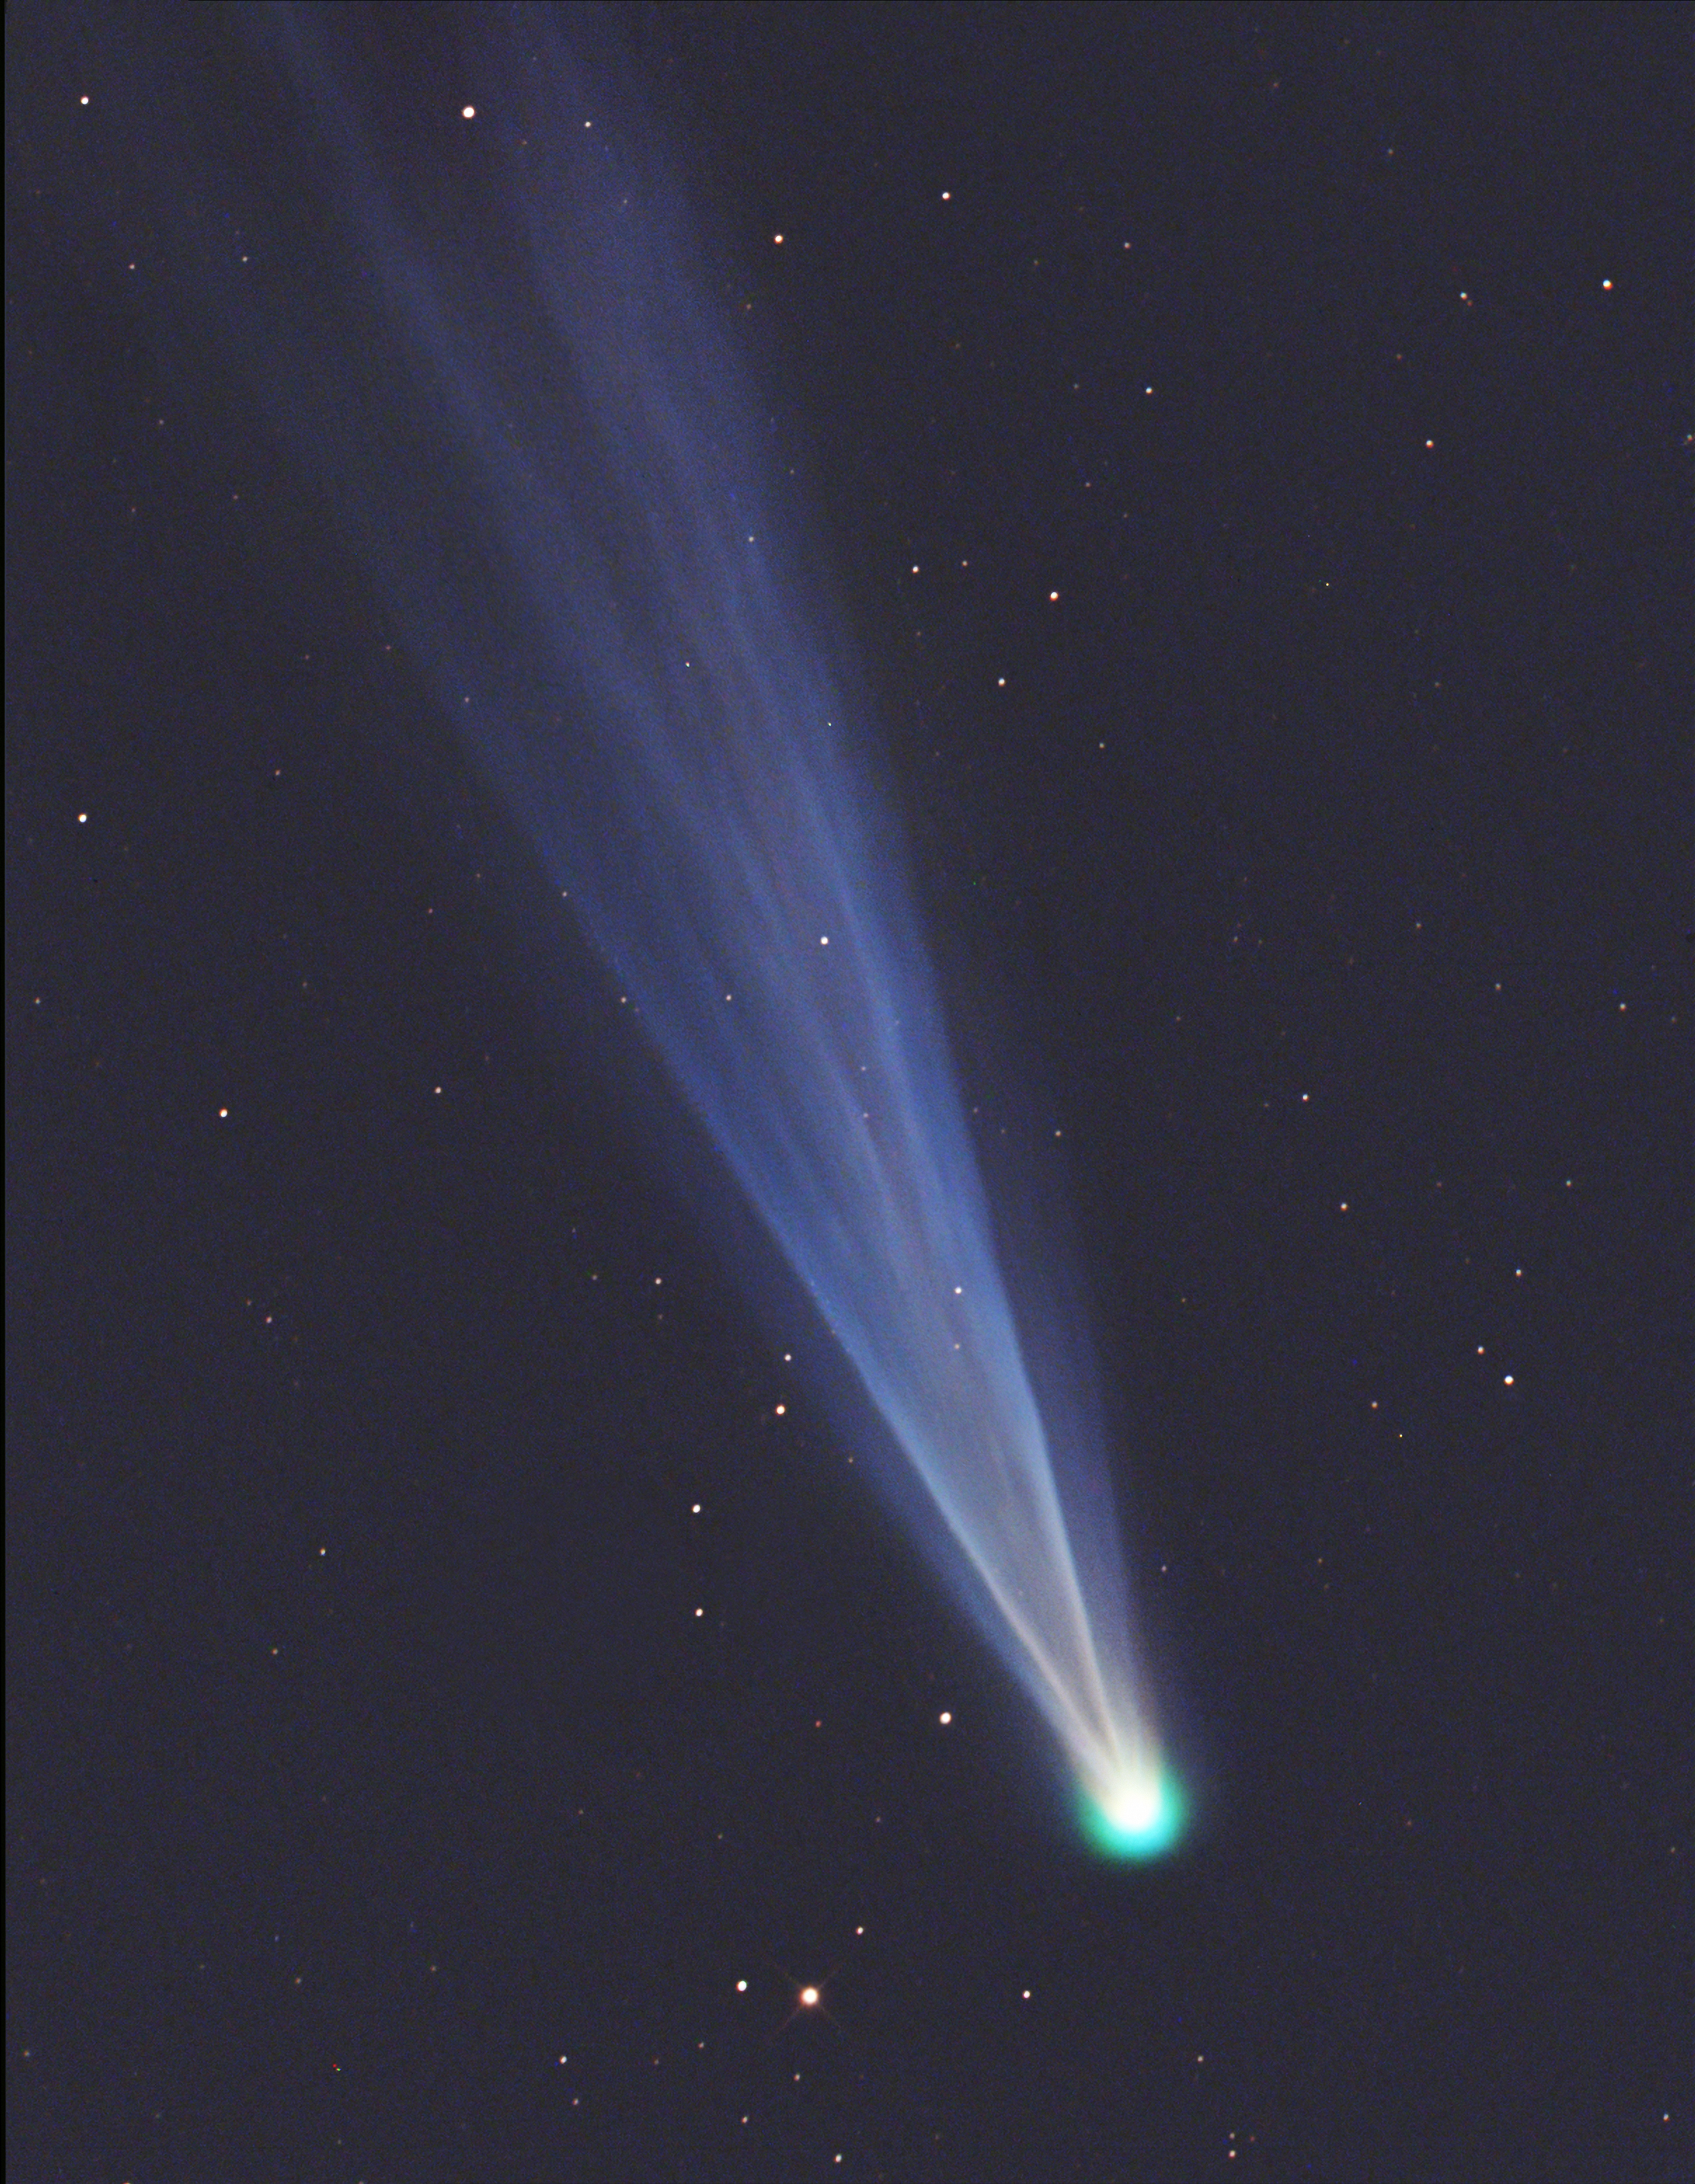 Global perspectives on a comet- All Images | NSF ...